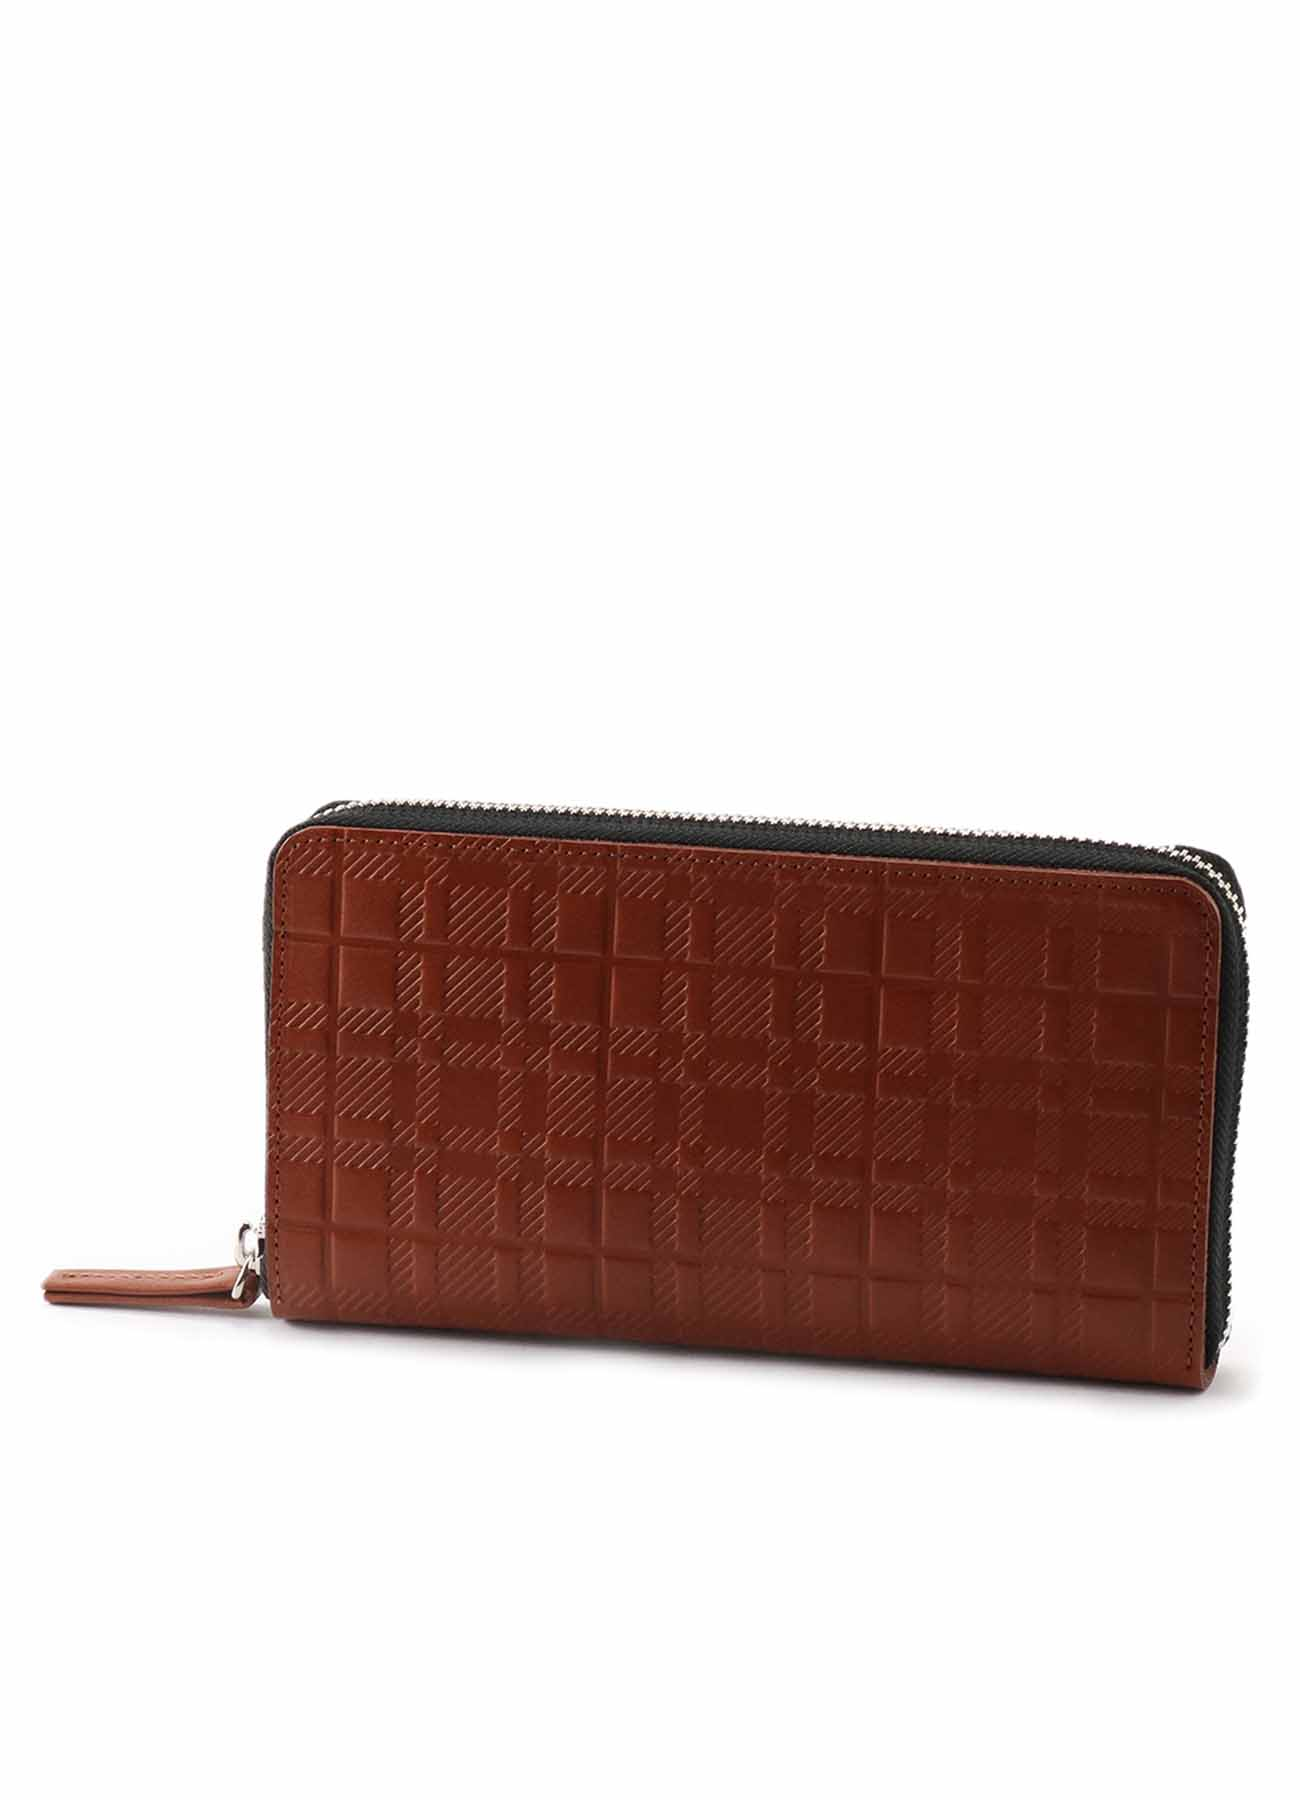 PLAID EMBOSS TANNED ROUND ZIP LONG WALLET